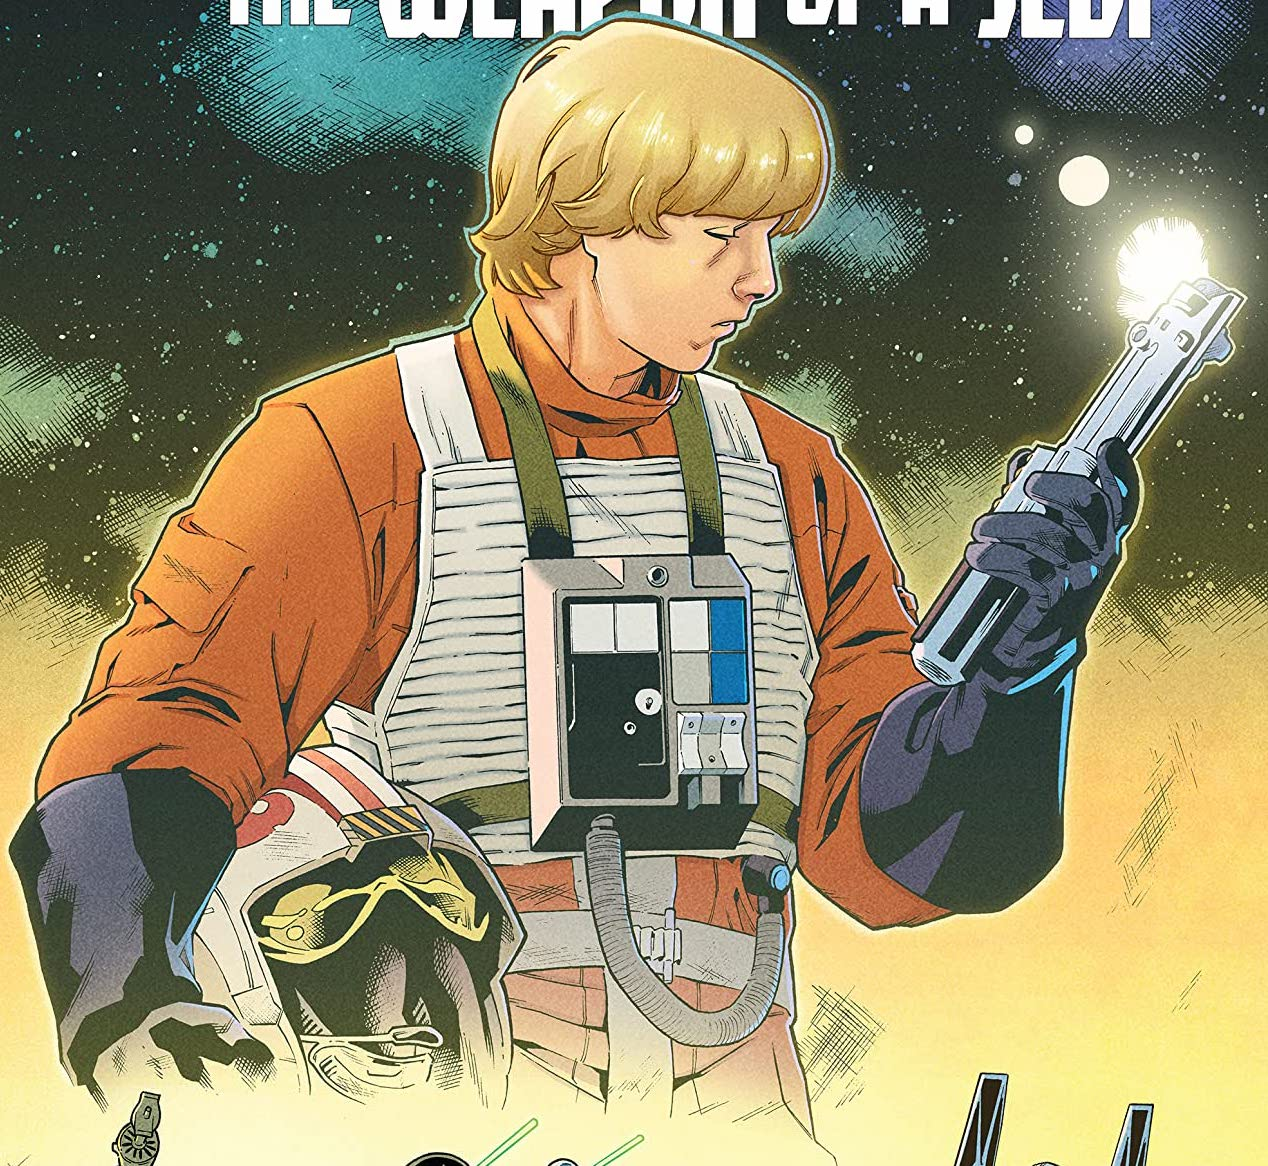 'Star Wars Adventures: Weapon of a Jedi' #1 review